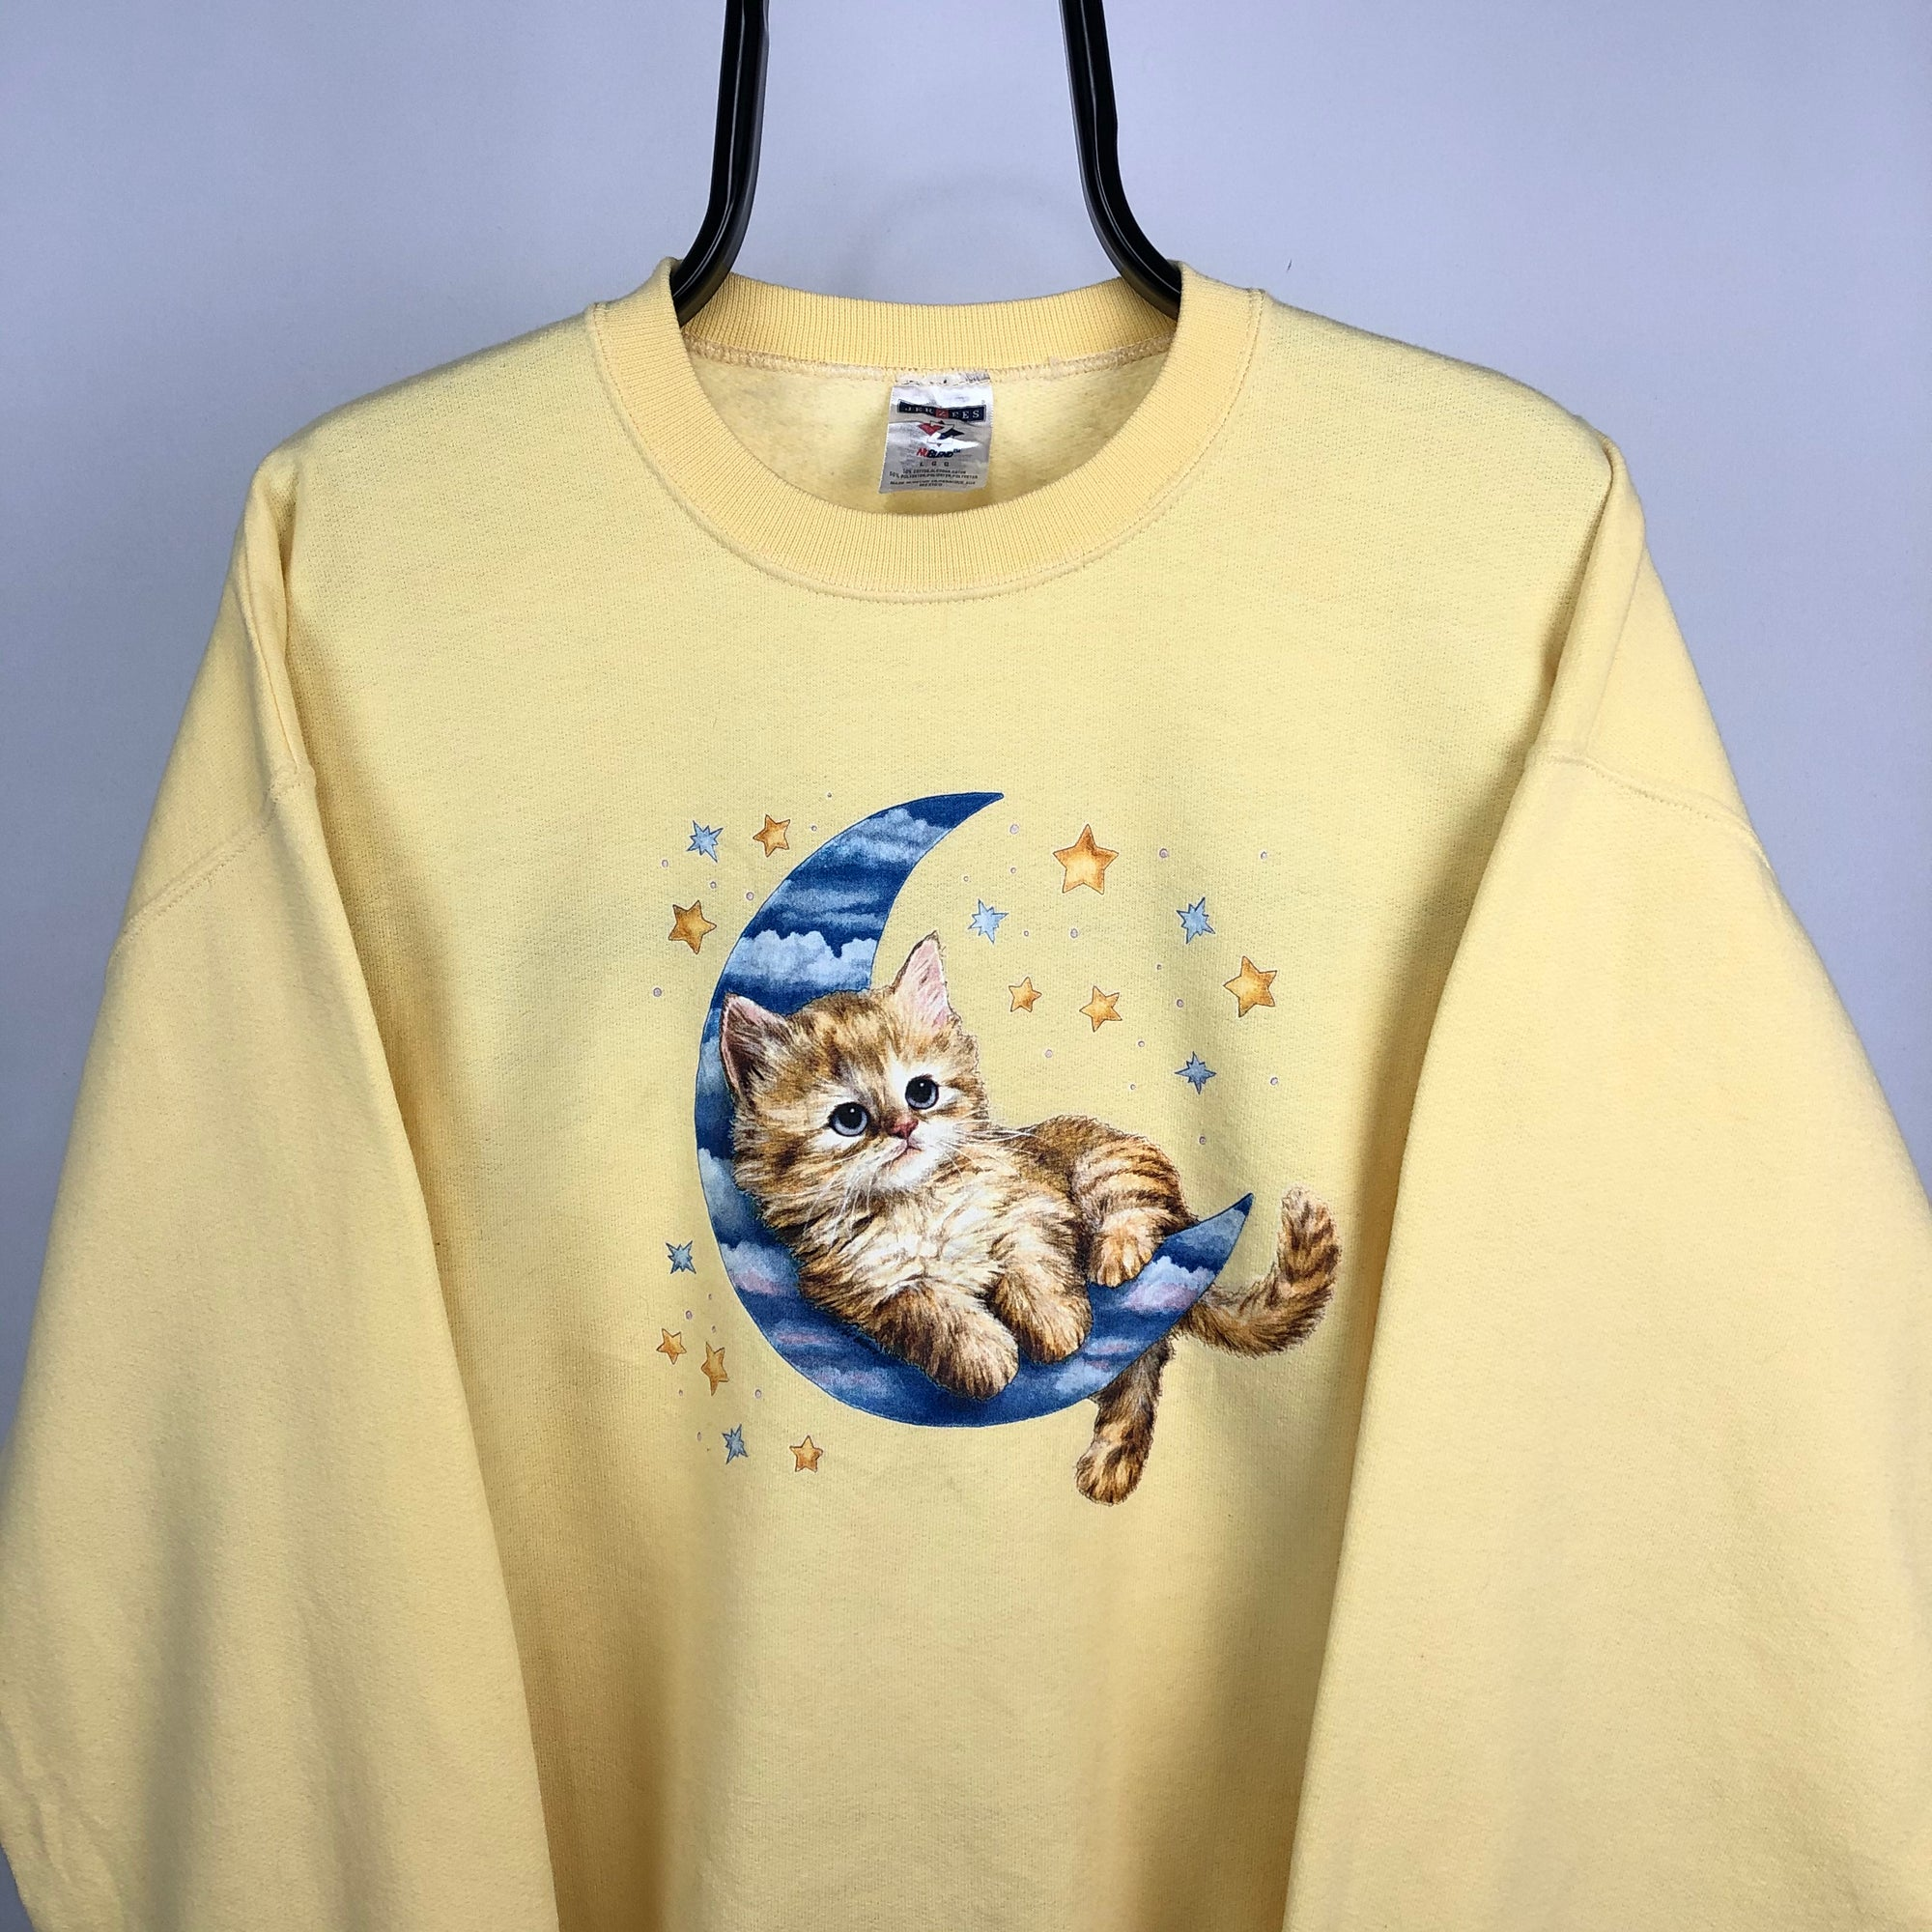 Vintage 90s Kitten Print Sweatshirt in Yellow - Men's Large/Women's XL